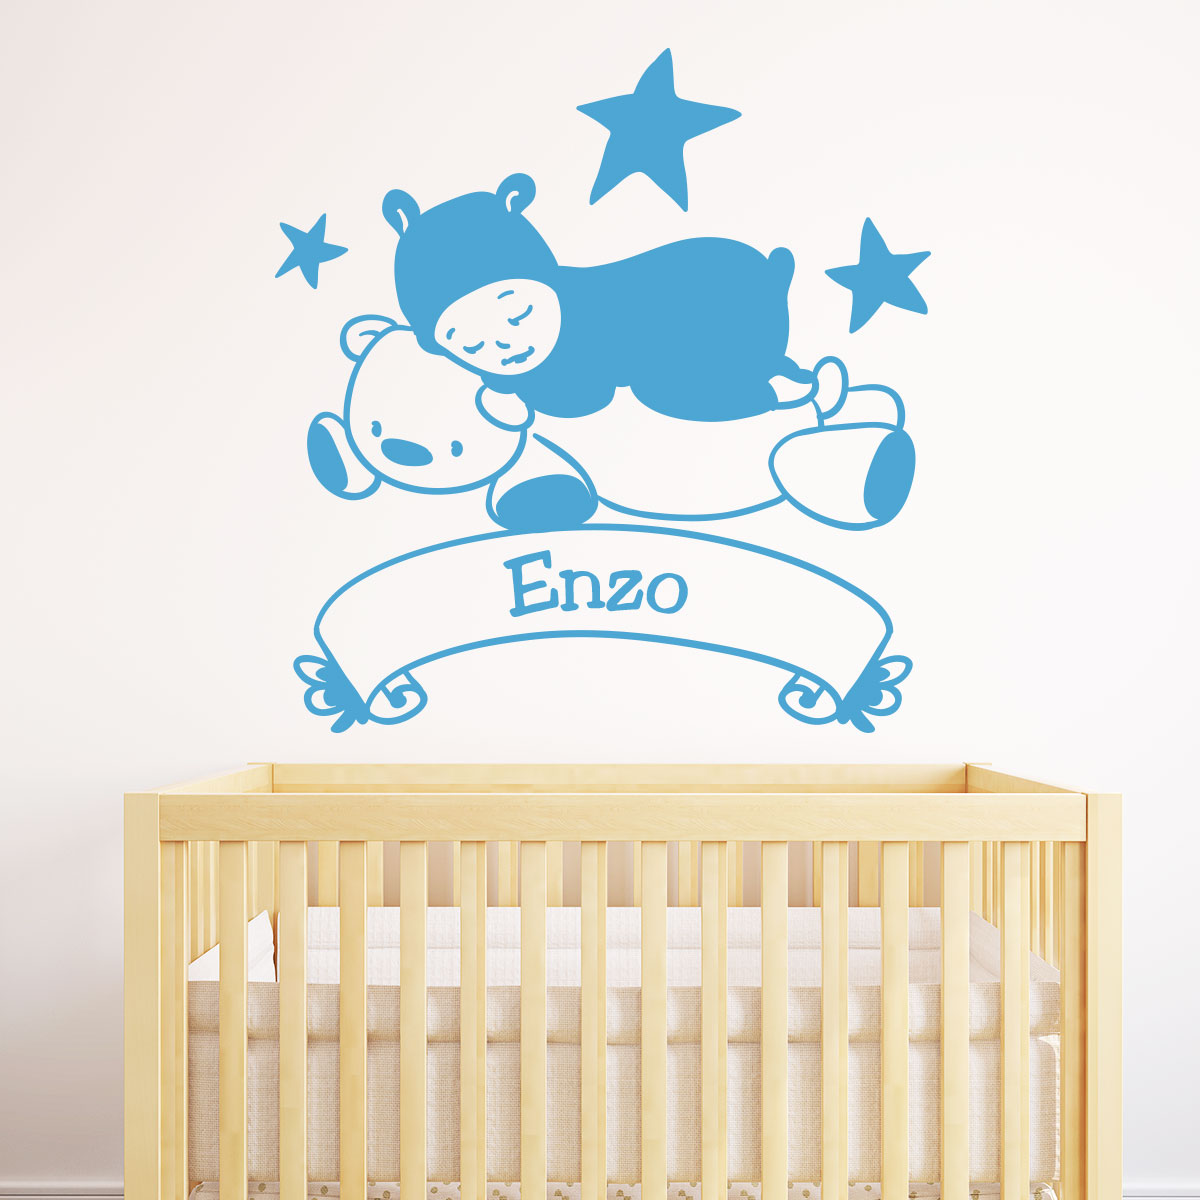 sticker pr nom personnalis ourson et b b chambre enfants pr noms ambiance sticker. Black Bedroom Furniture Sets. Home Design Ideas